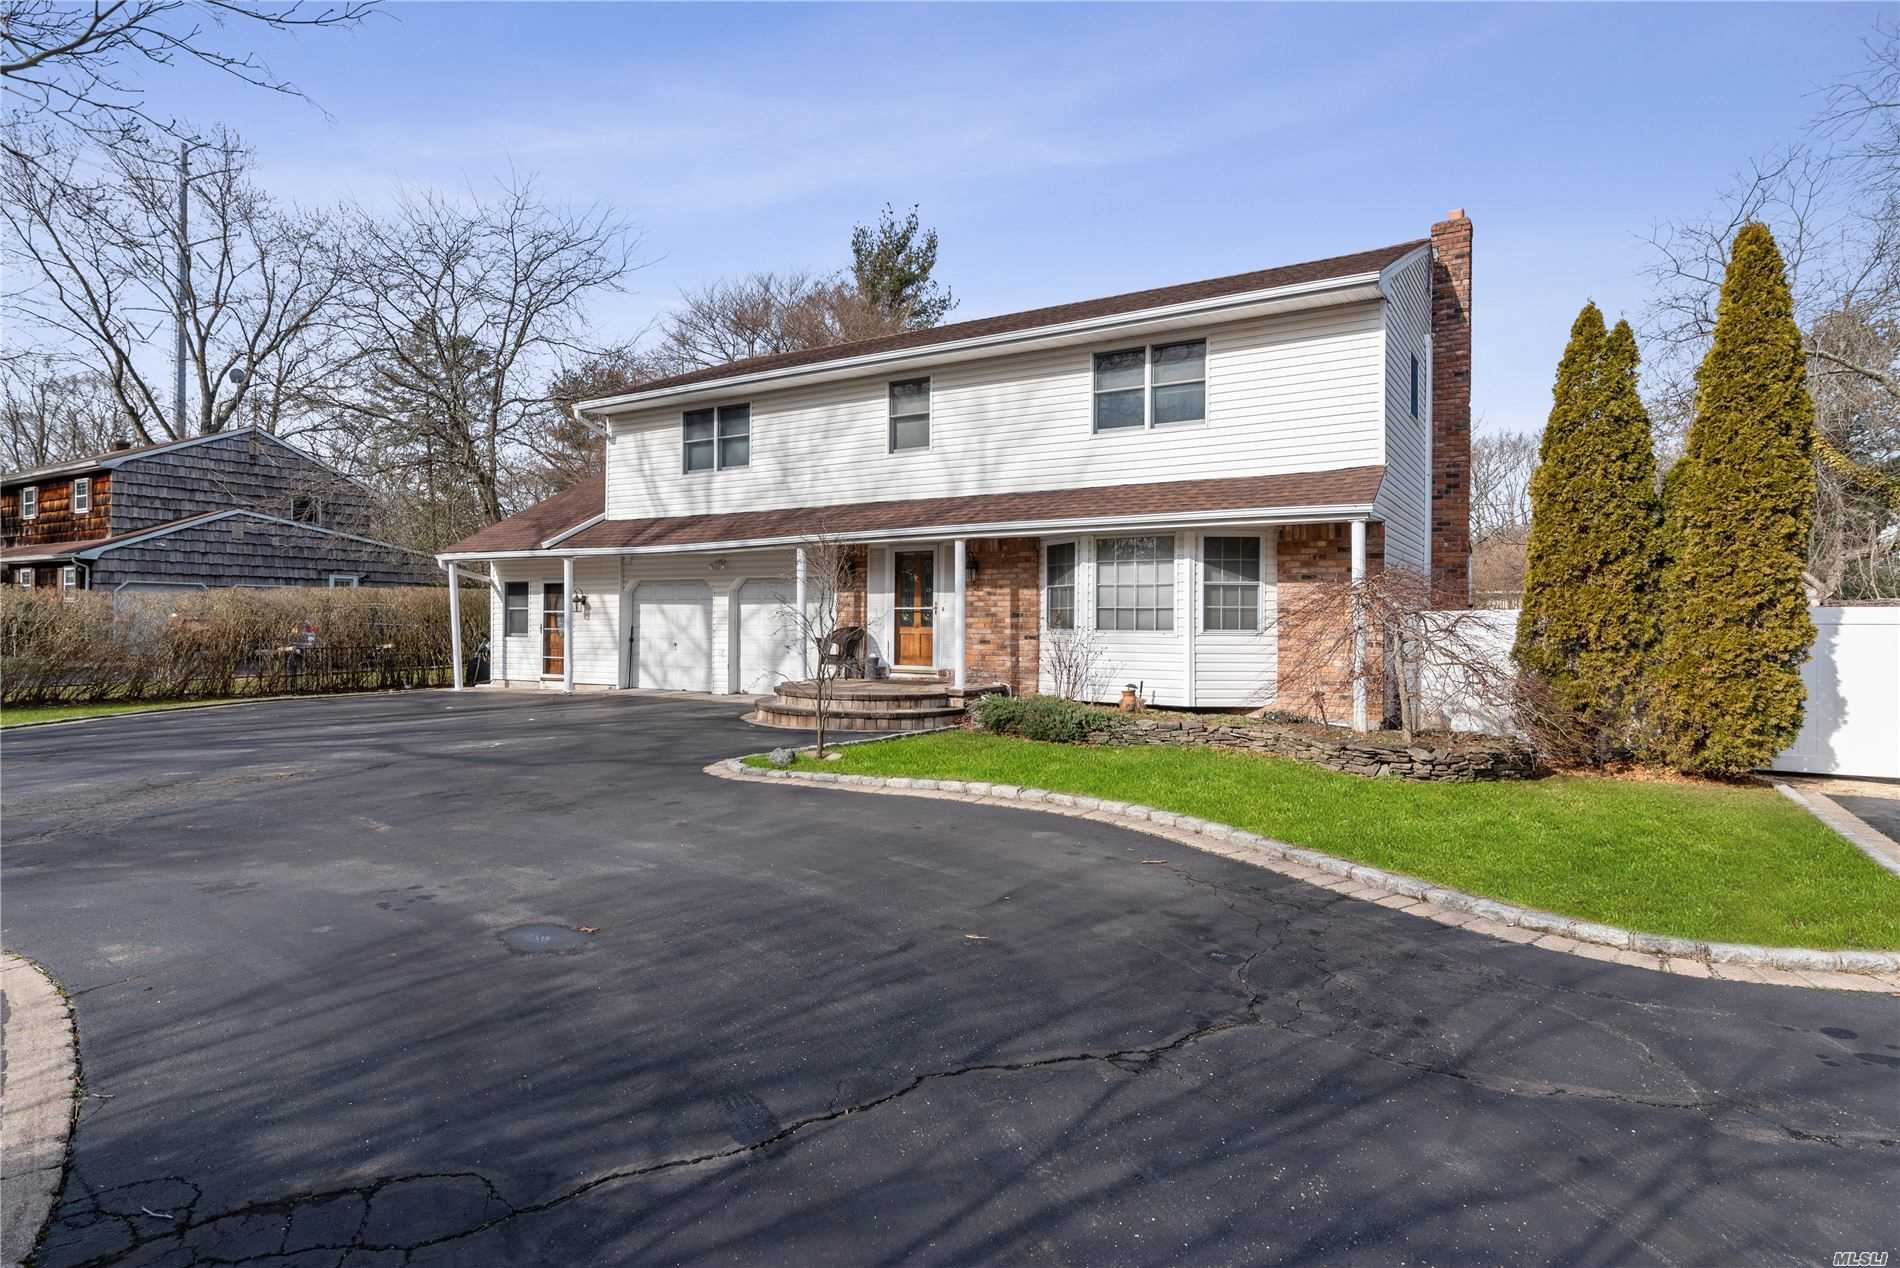 157 Parkway Dr - Commack, New York